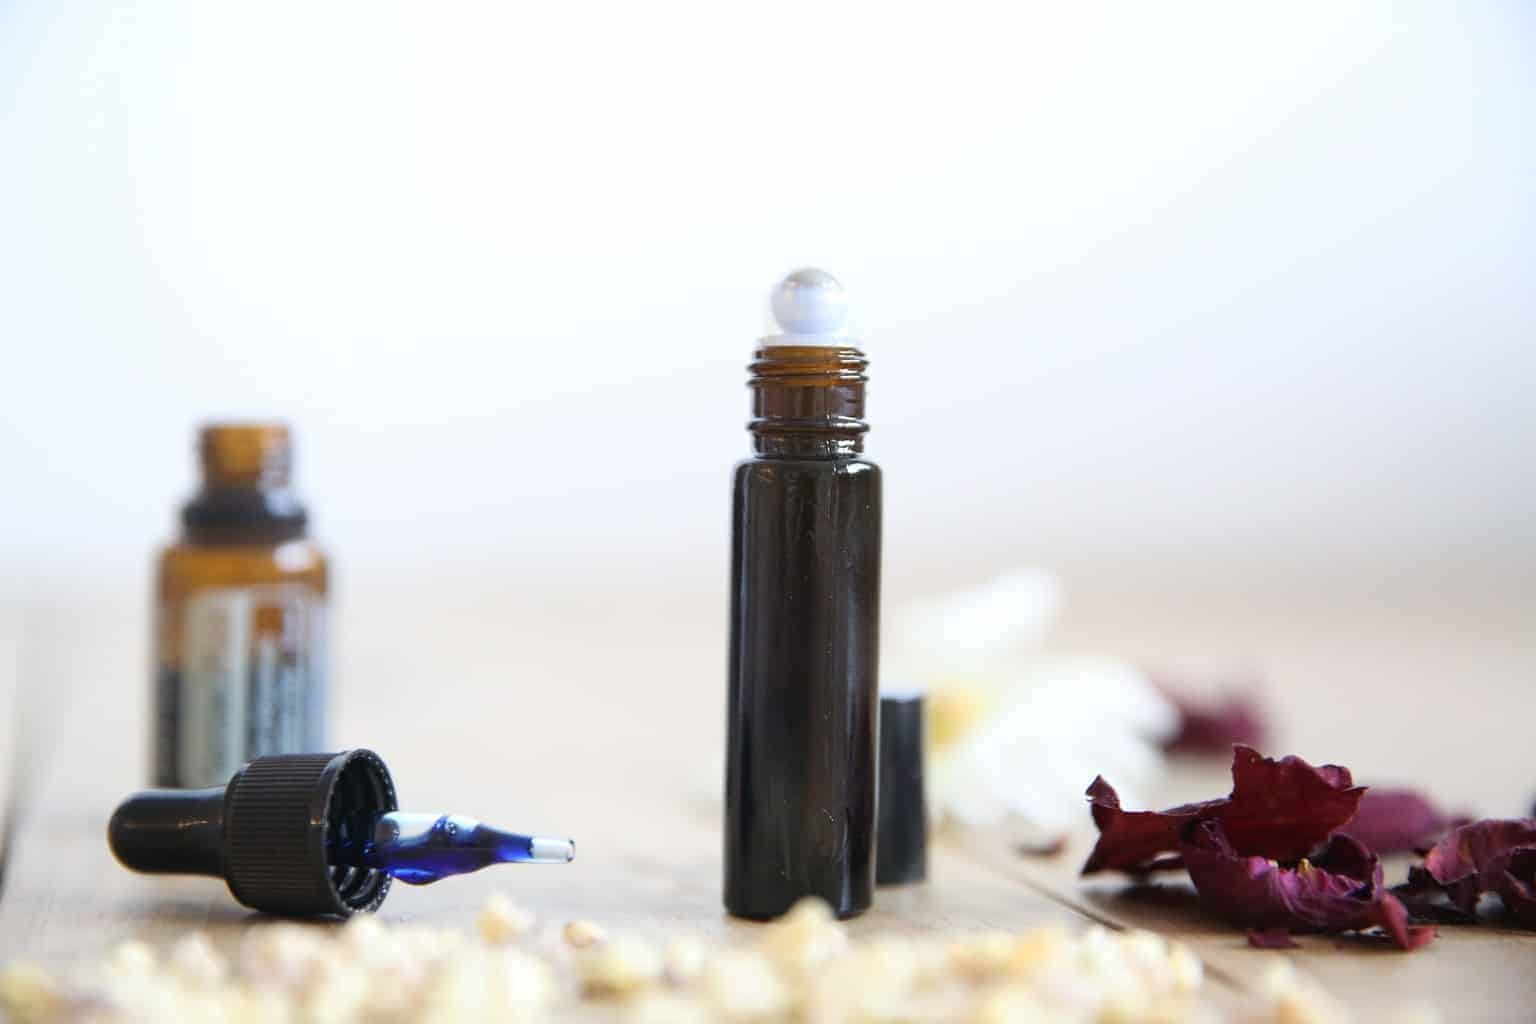 best roller bottle blend for scars our oily house essential oil education natural remedies for home health body diy recipes natural solutions healthy lifestyle homemade